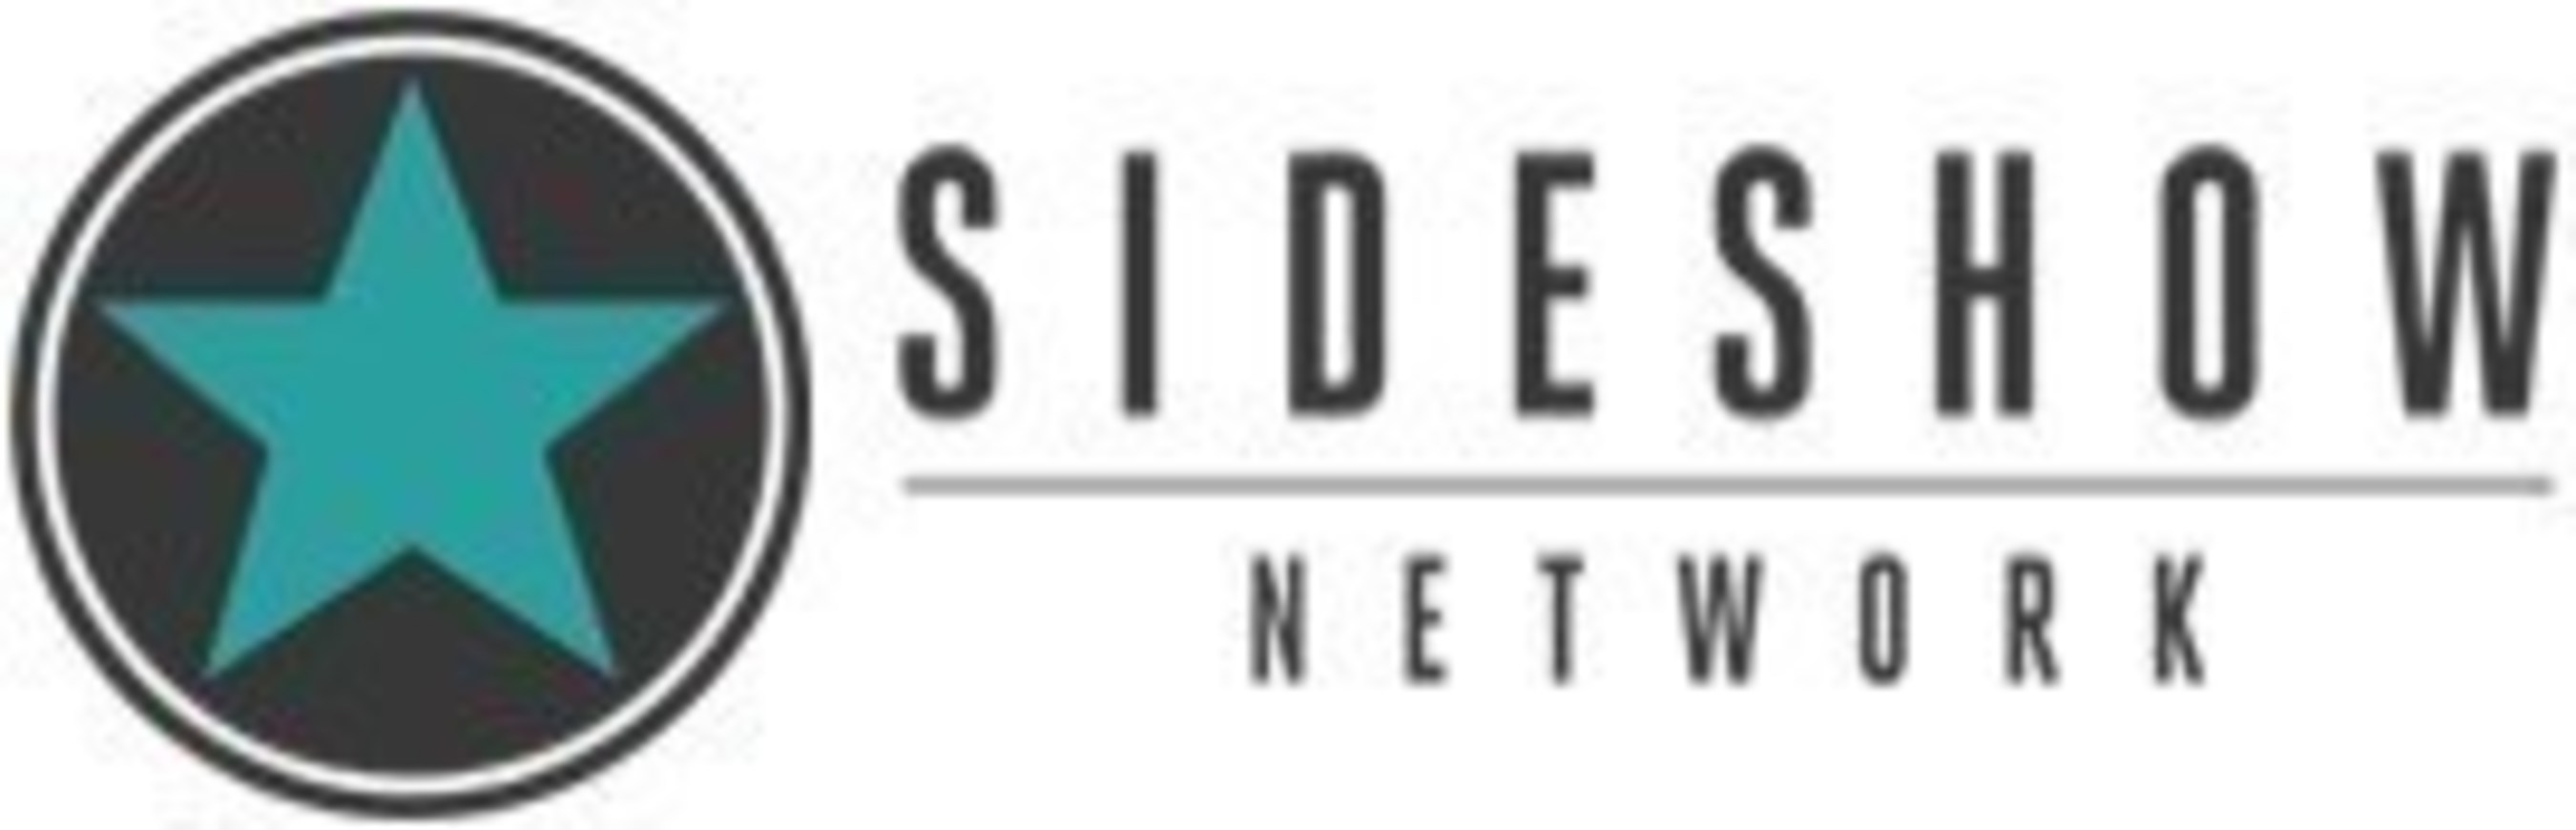 Sideshow Network's 'Innovation Crush' & Podcast Host Chris Denson Helps Listeners Get Wiser, Smarter & Better in Business & Life for the New Year With Weekly Game Chan